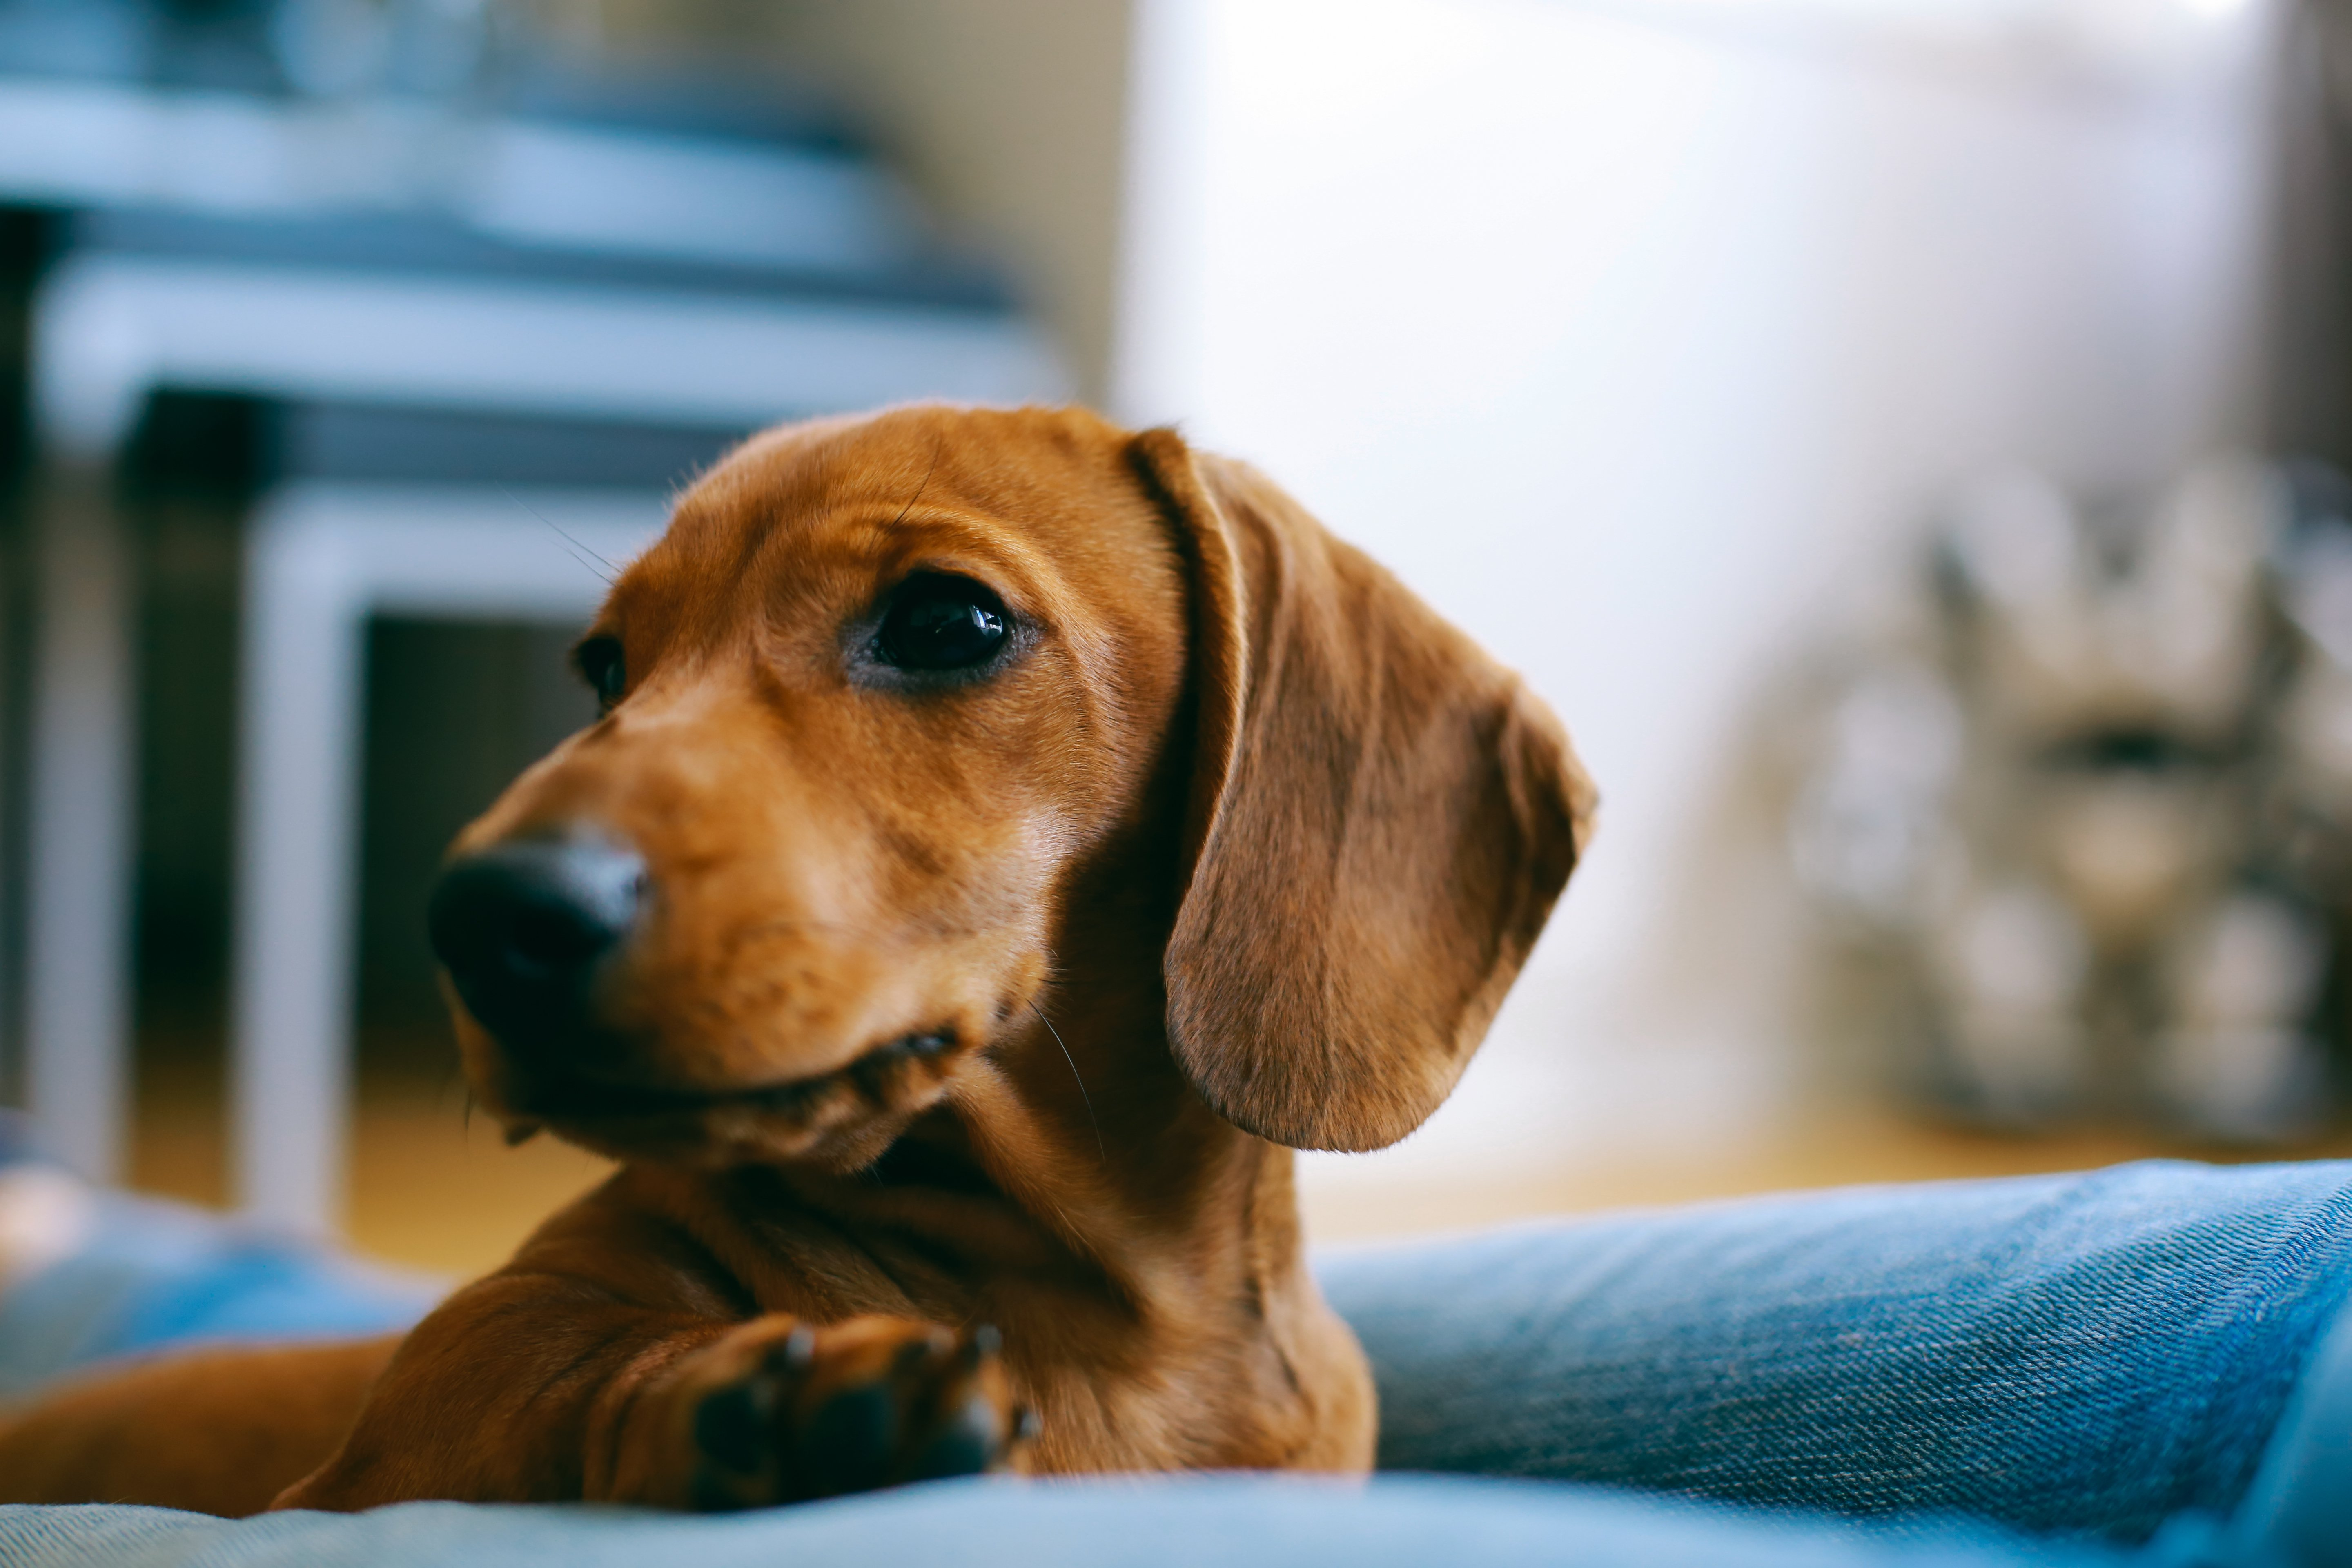 Oklahoma Woman Killed in Attack by Pack of Dachshund Dogs | Time